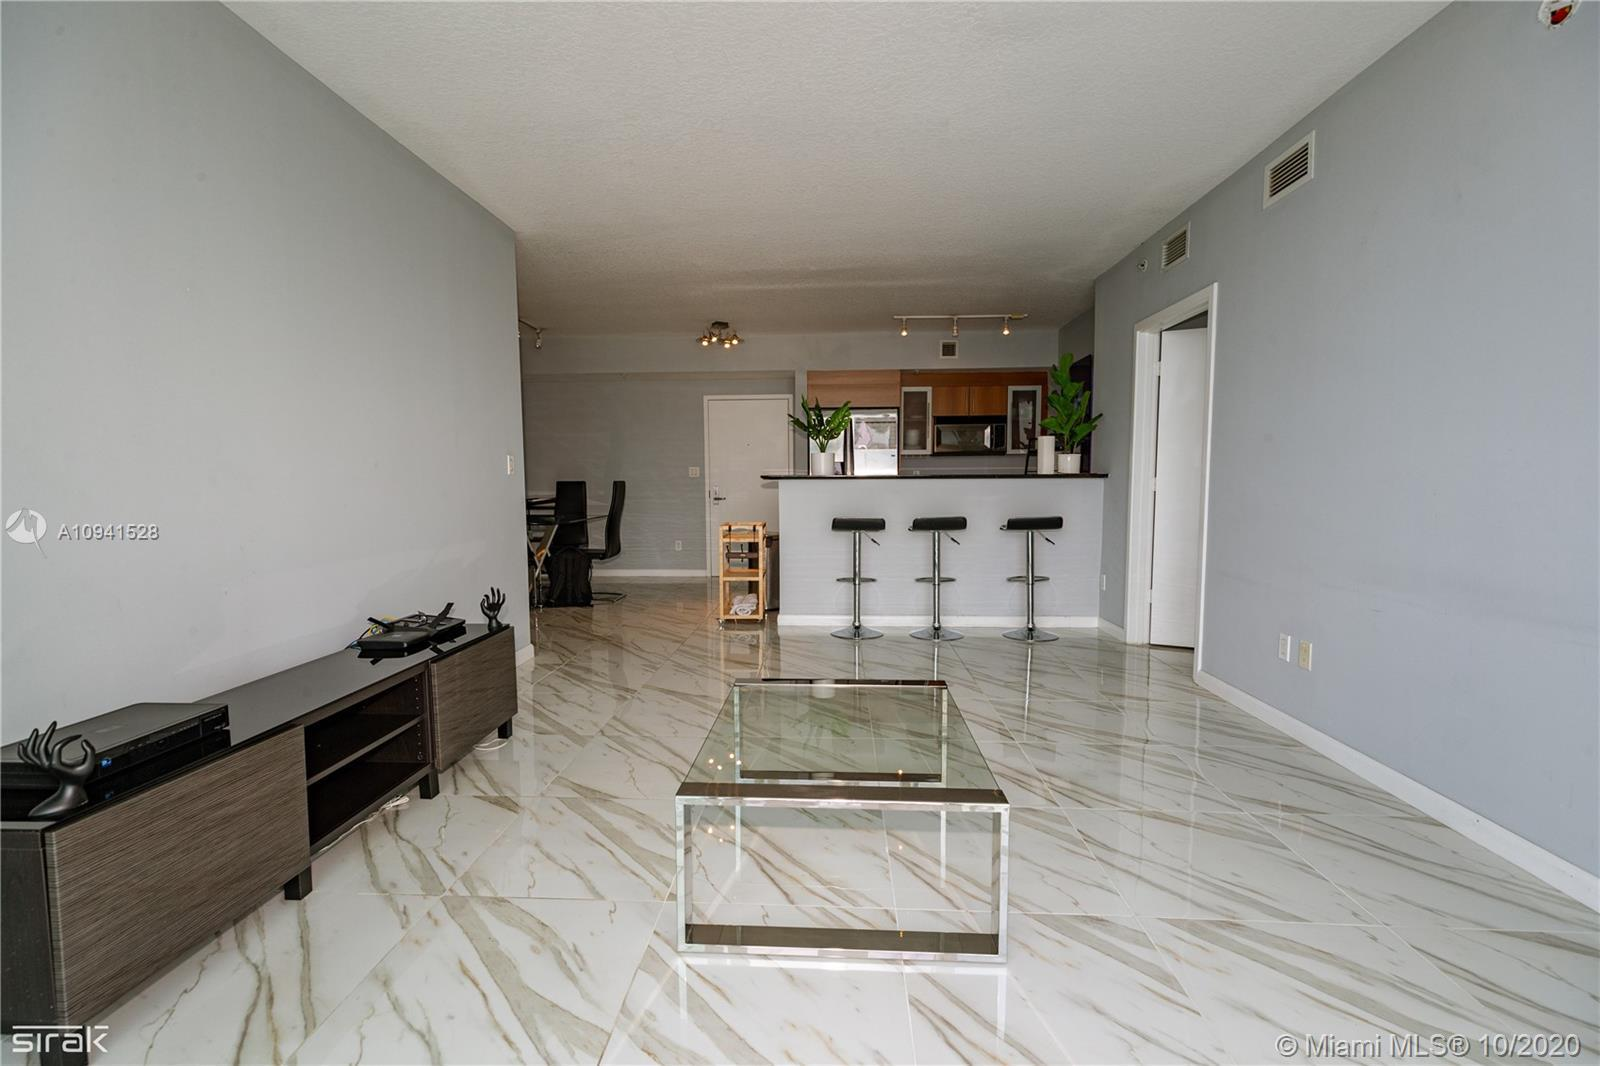 Beautiful 2 bedroom 2 bathroom split plan condo with views of Biscayne Bay, Port of Miami, and Downt